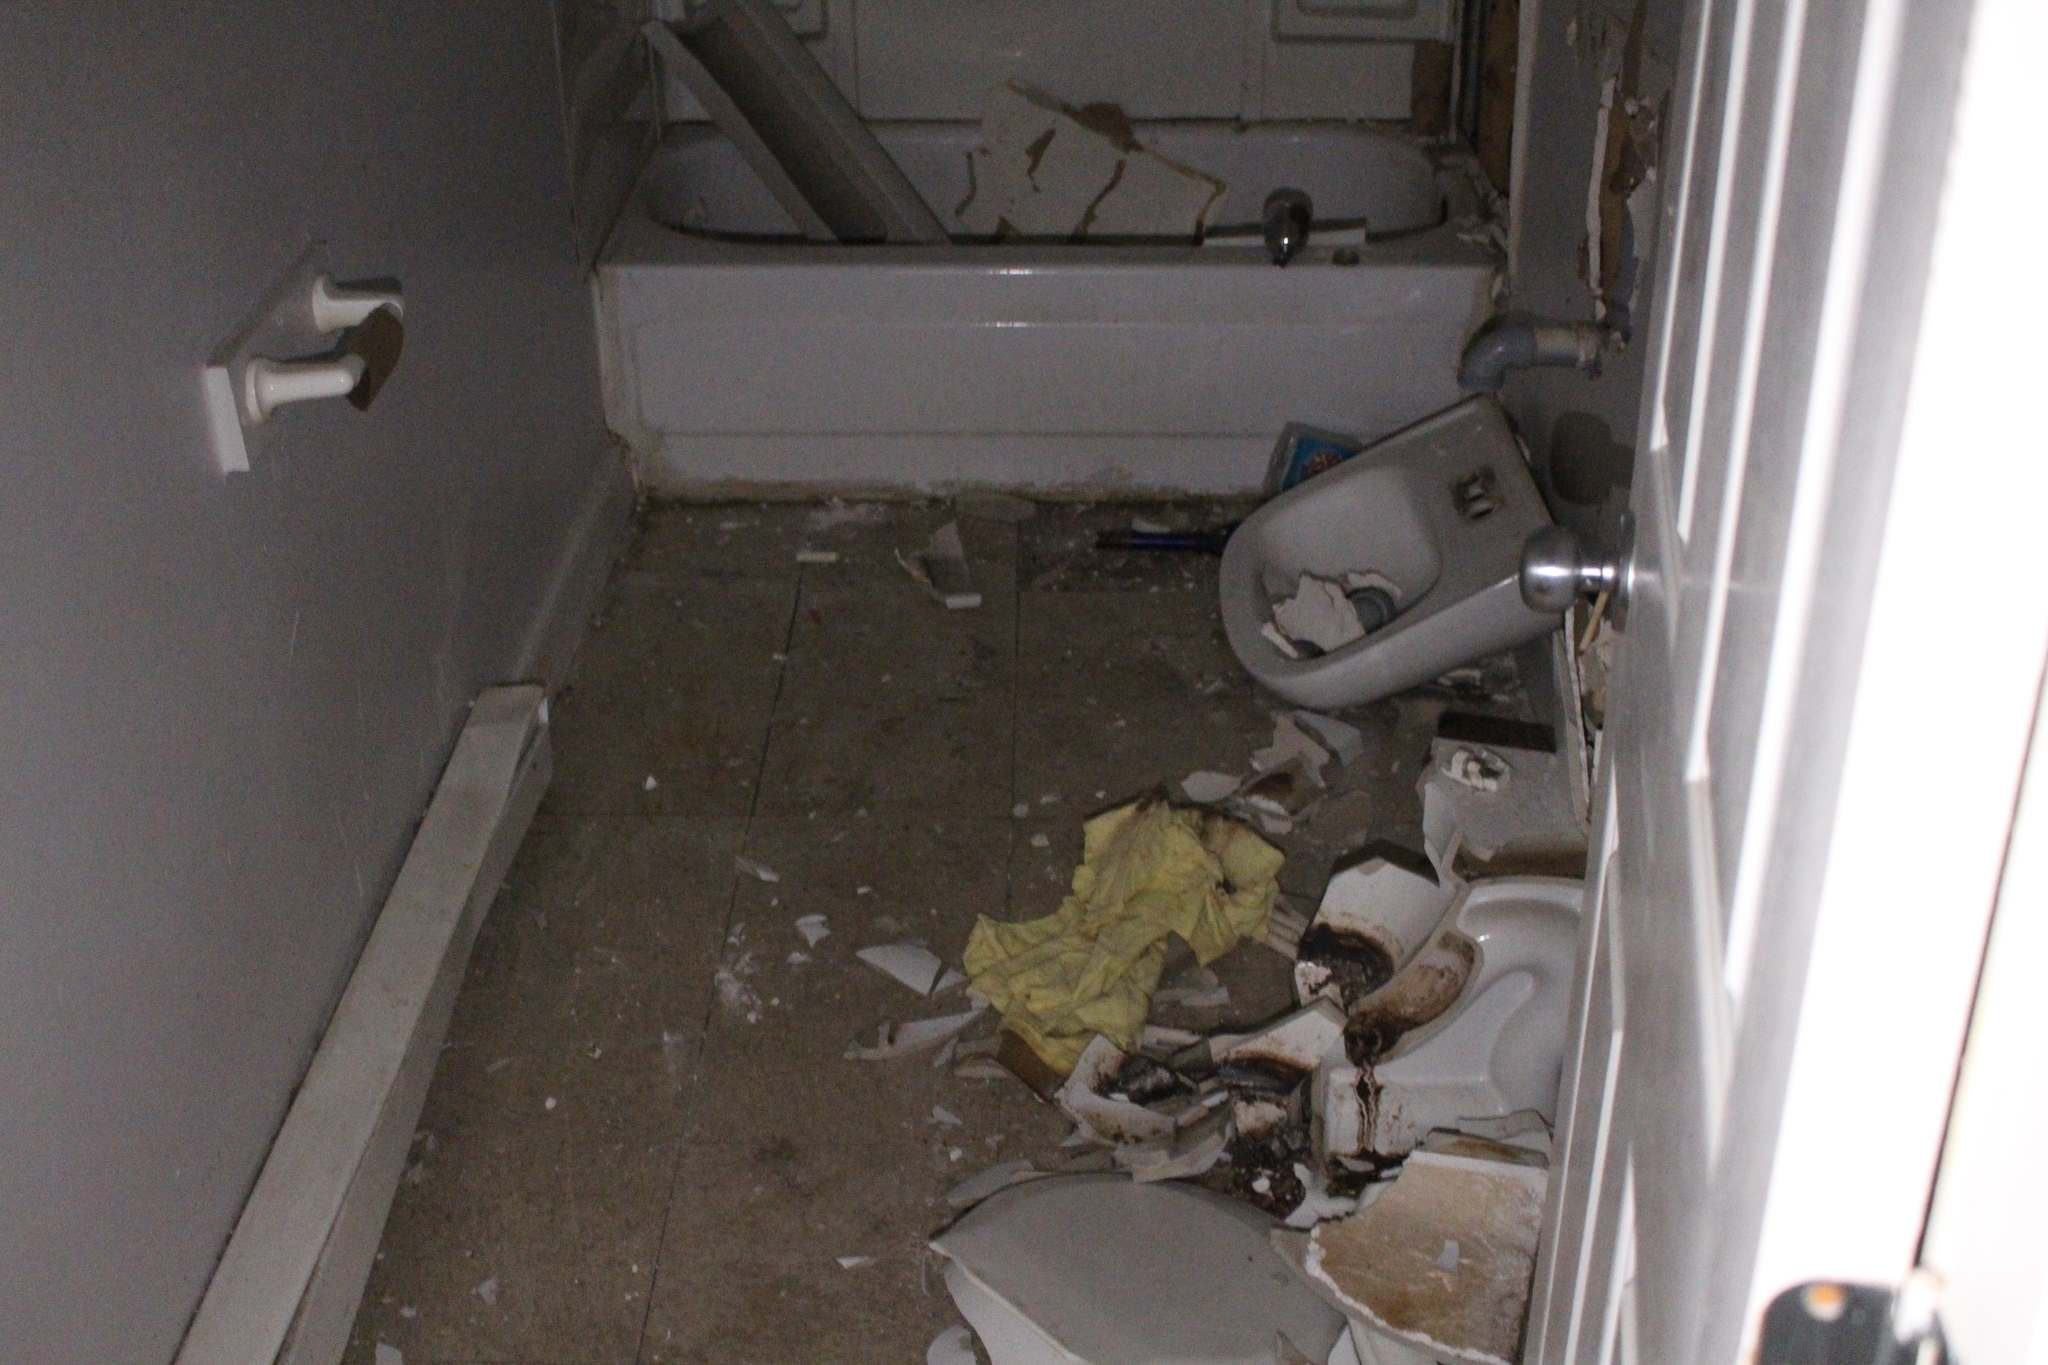 The bathroom toilet has been shattered into pieces. (Ryan Thorpe / Winnipeg Free Press)